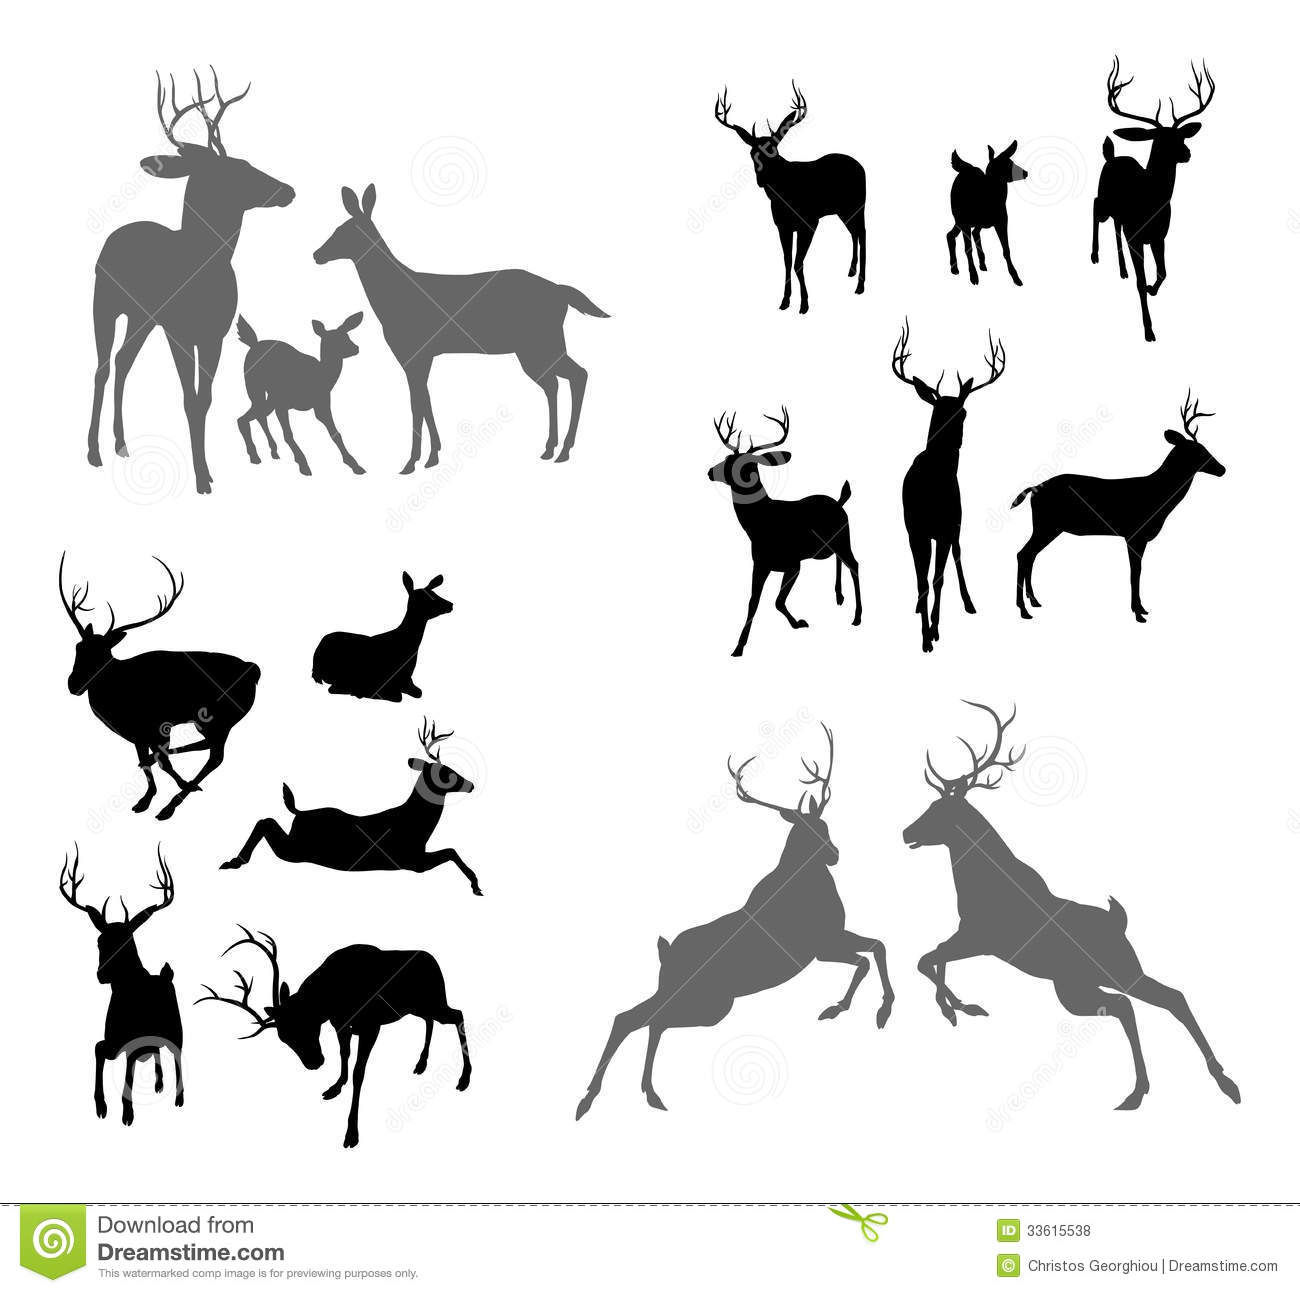 Ielts S le Chart For Writing Task 1 together with Royalty Free Stock Photos Deer Stag Fawn Doe Silhouettes Set Including Bucks Stags Various Poses Also Family Group Pose Two Stags Fighting Image33615538 together with How Motorcycle Abs Works 64330 in addition Power Led Dimmer Using Atmega32  m together with 274 281. on two cycle